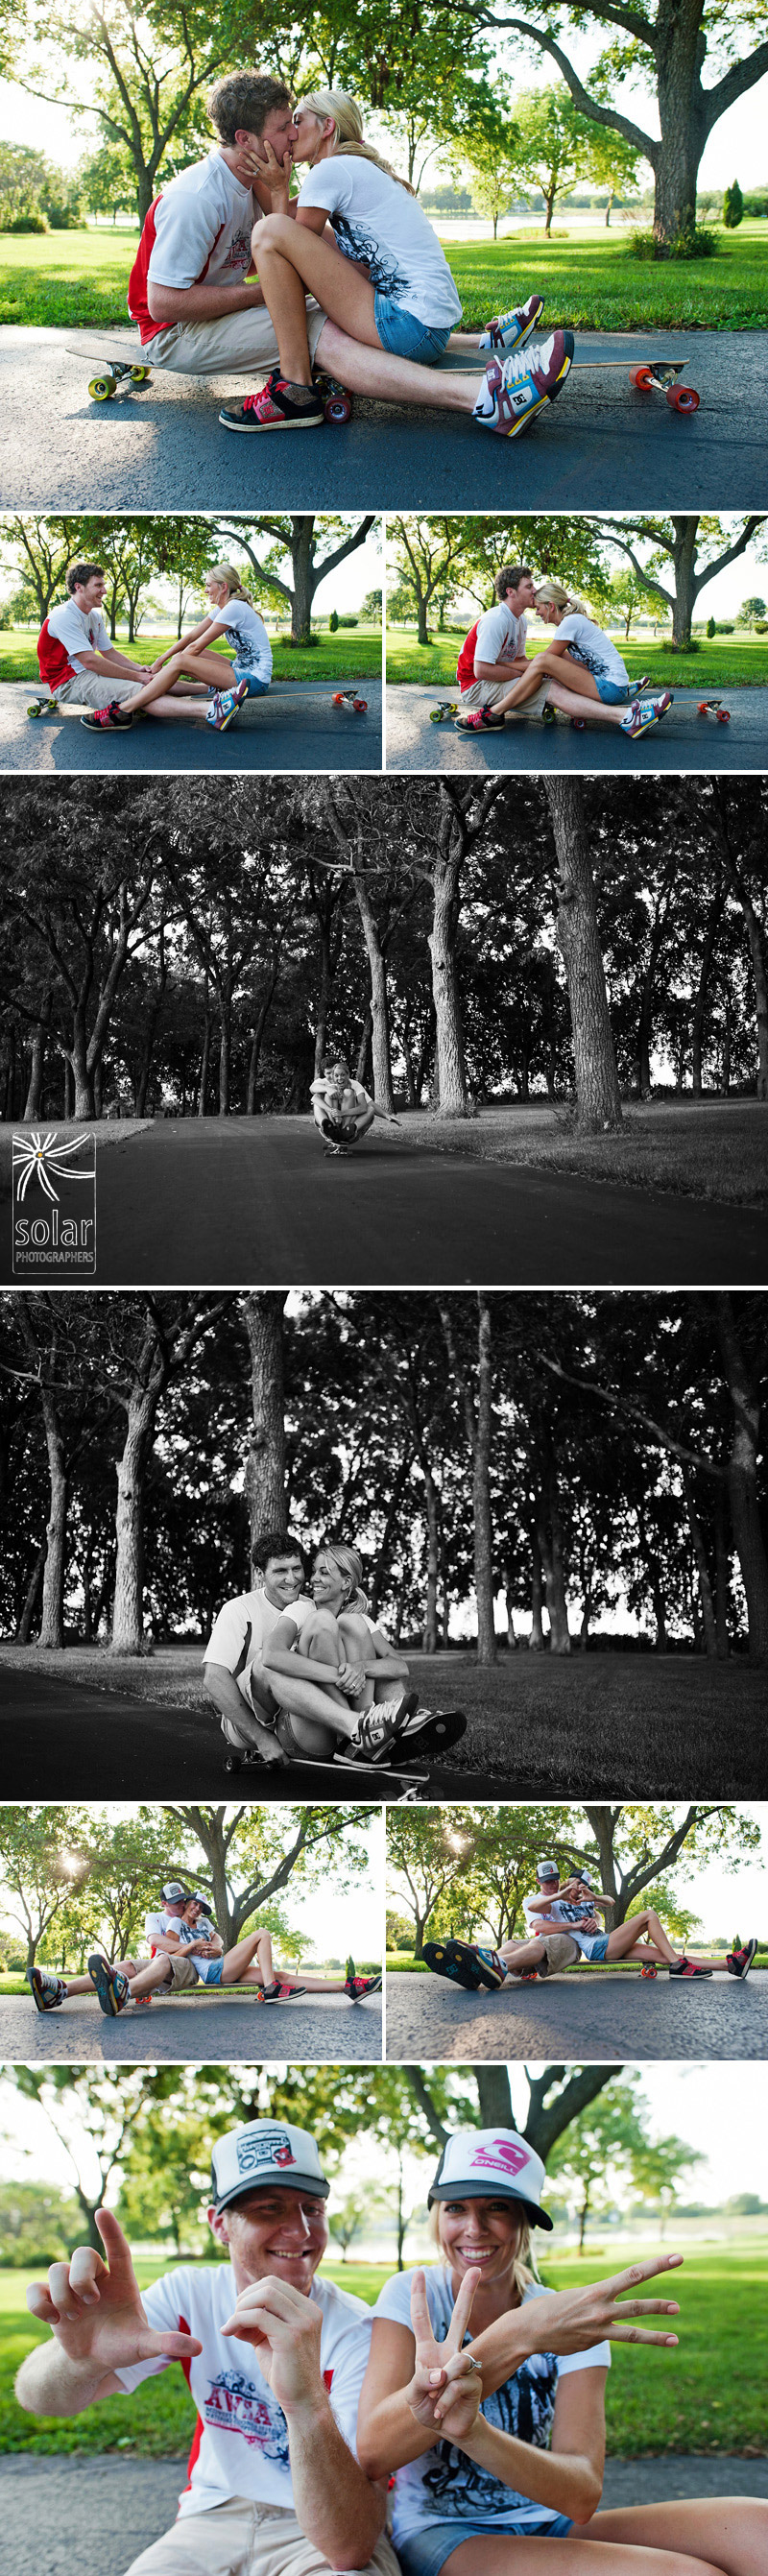 Fun longboarding engagement pictures.